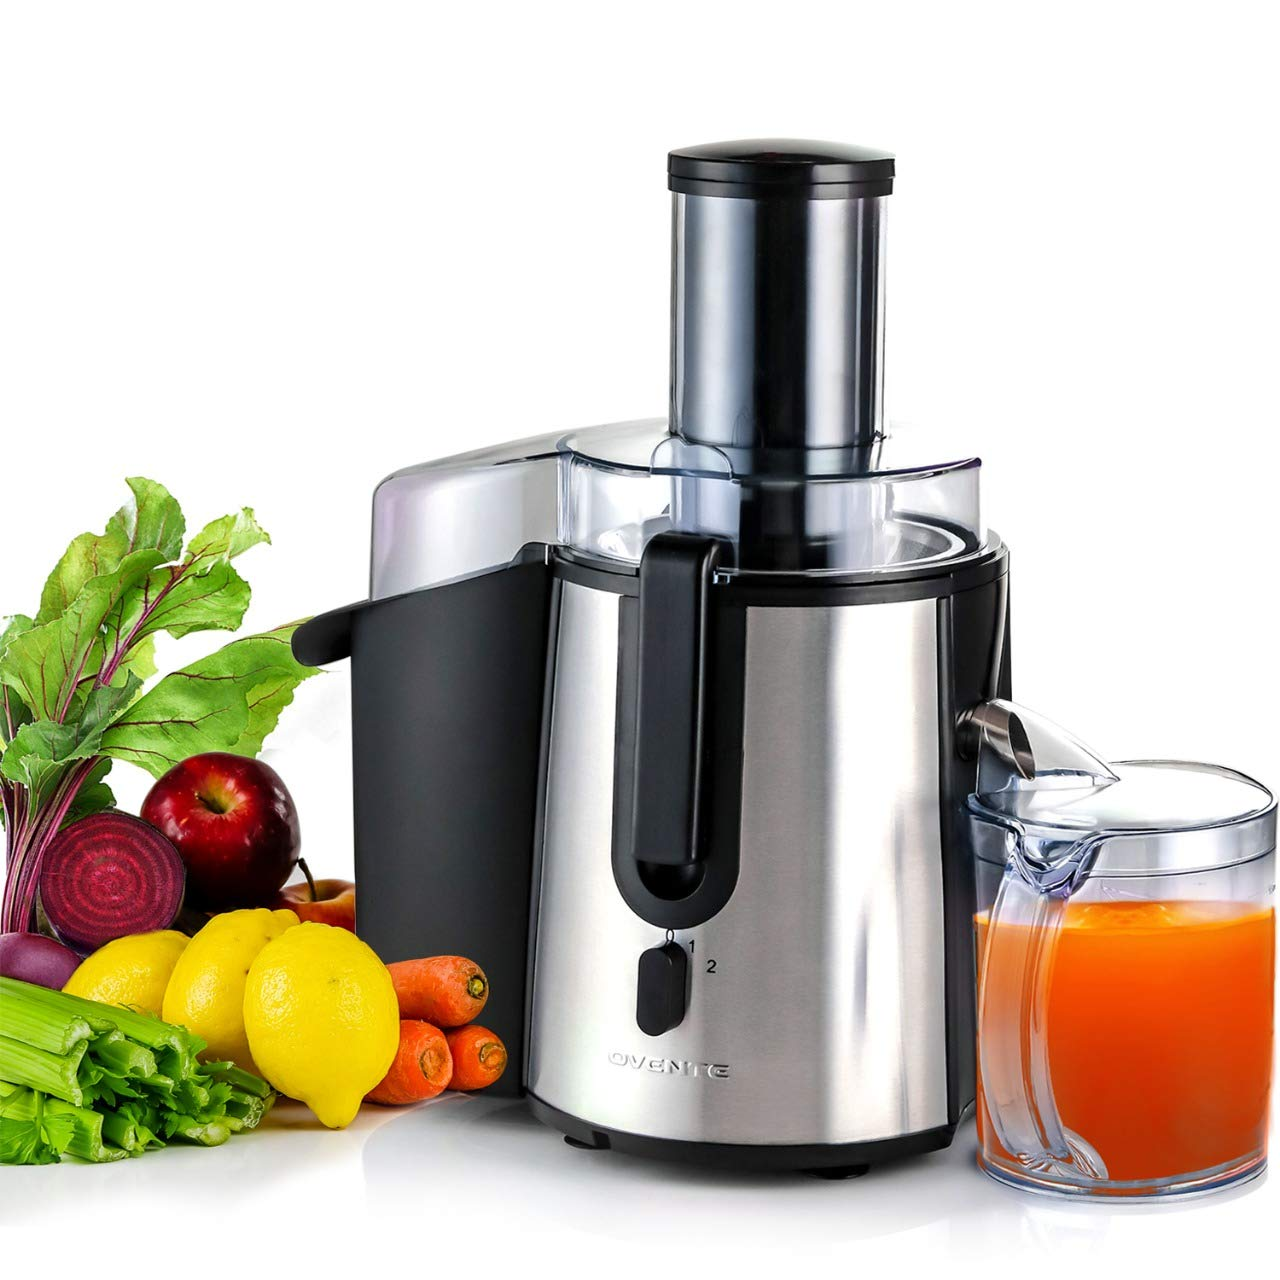 Ovente 1 JE7607BR Wide Mouth Juicer High Speed Juice Extractor for Fruits and Vegetables, 9.45 pounds, Black